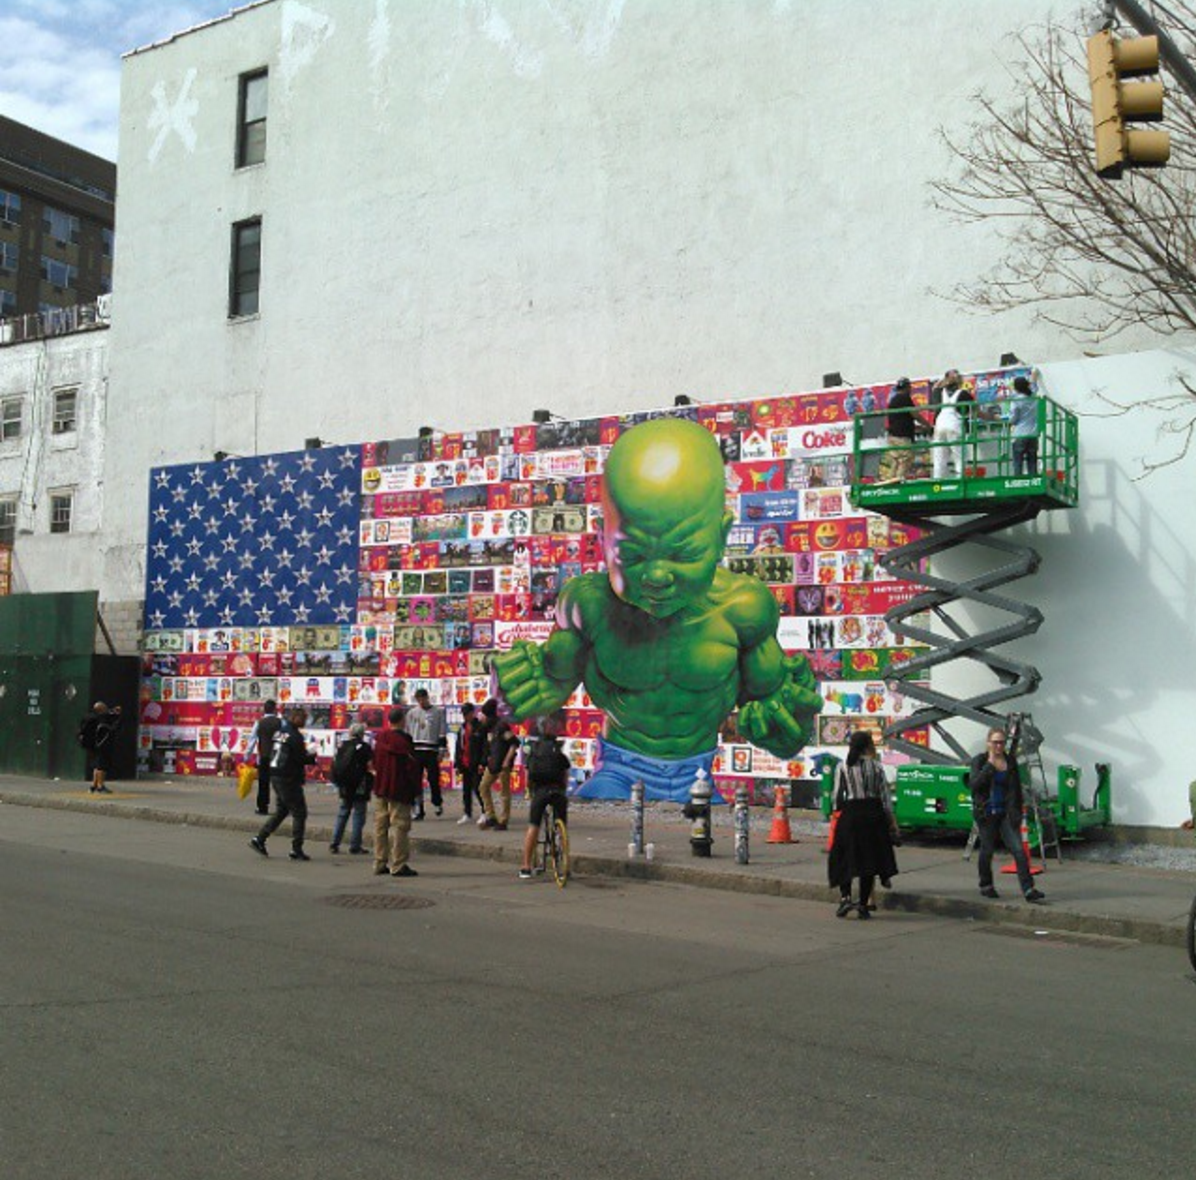 Example: Temper Tot mural by Ron English in Manhattan